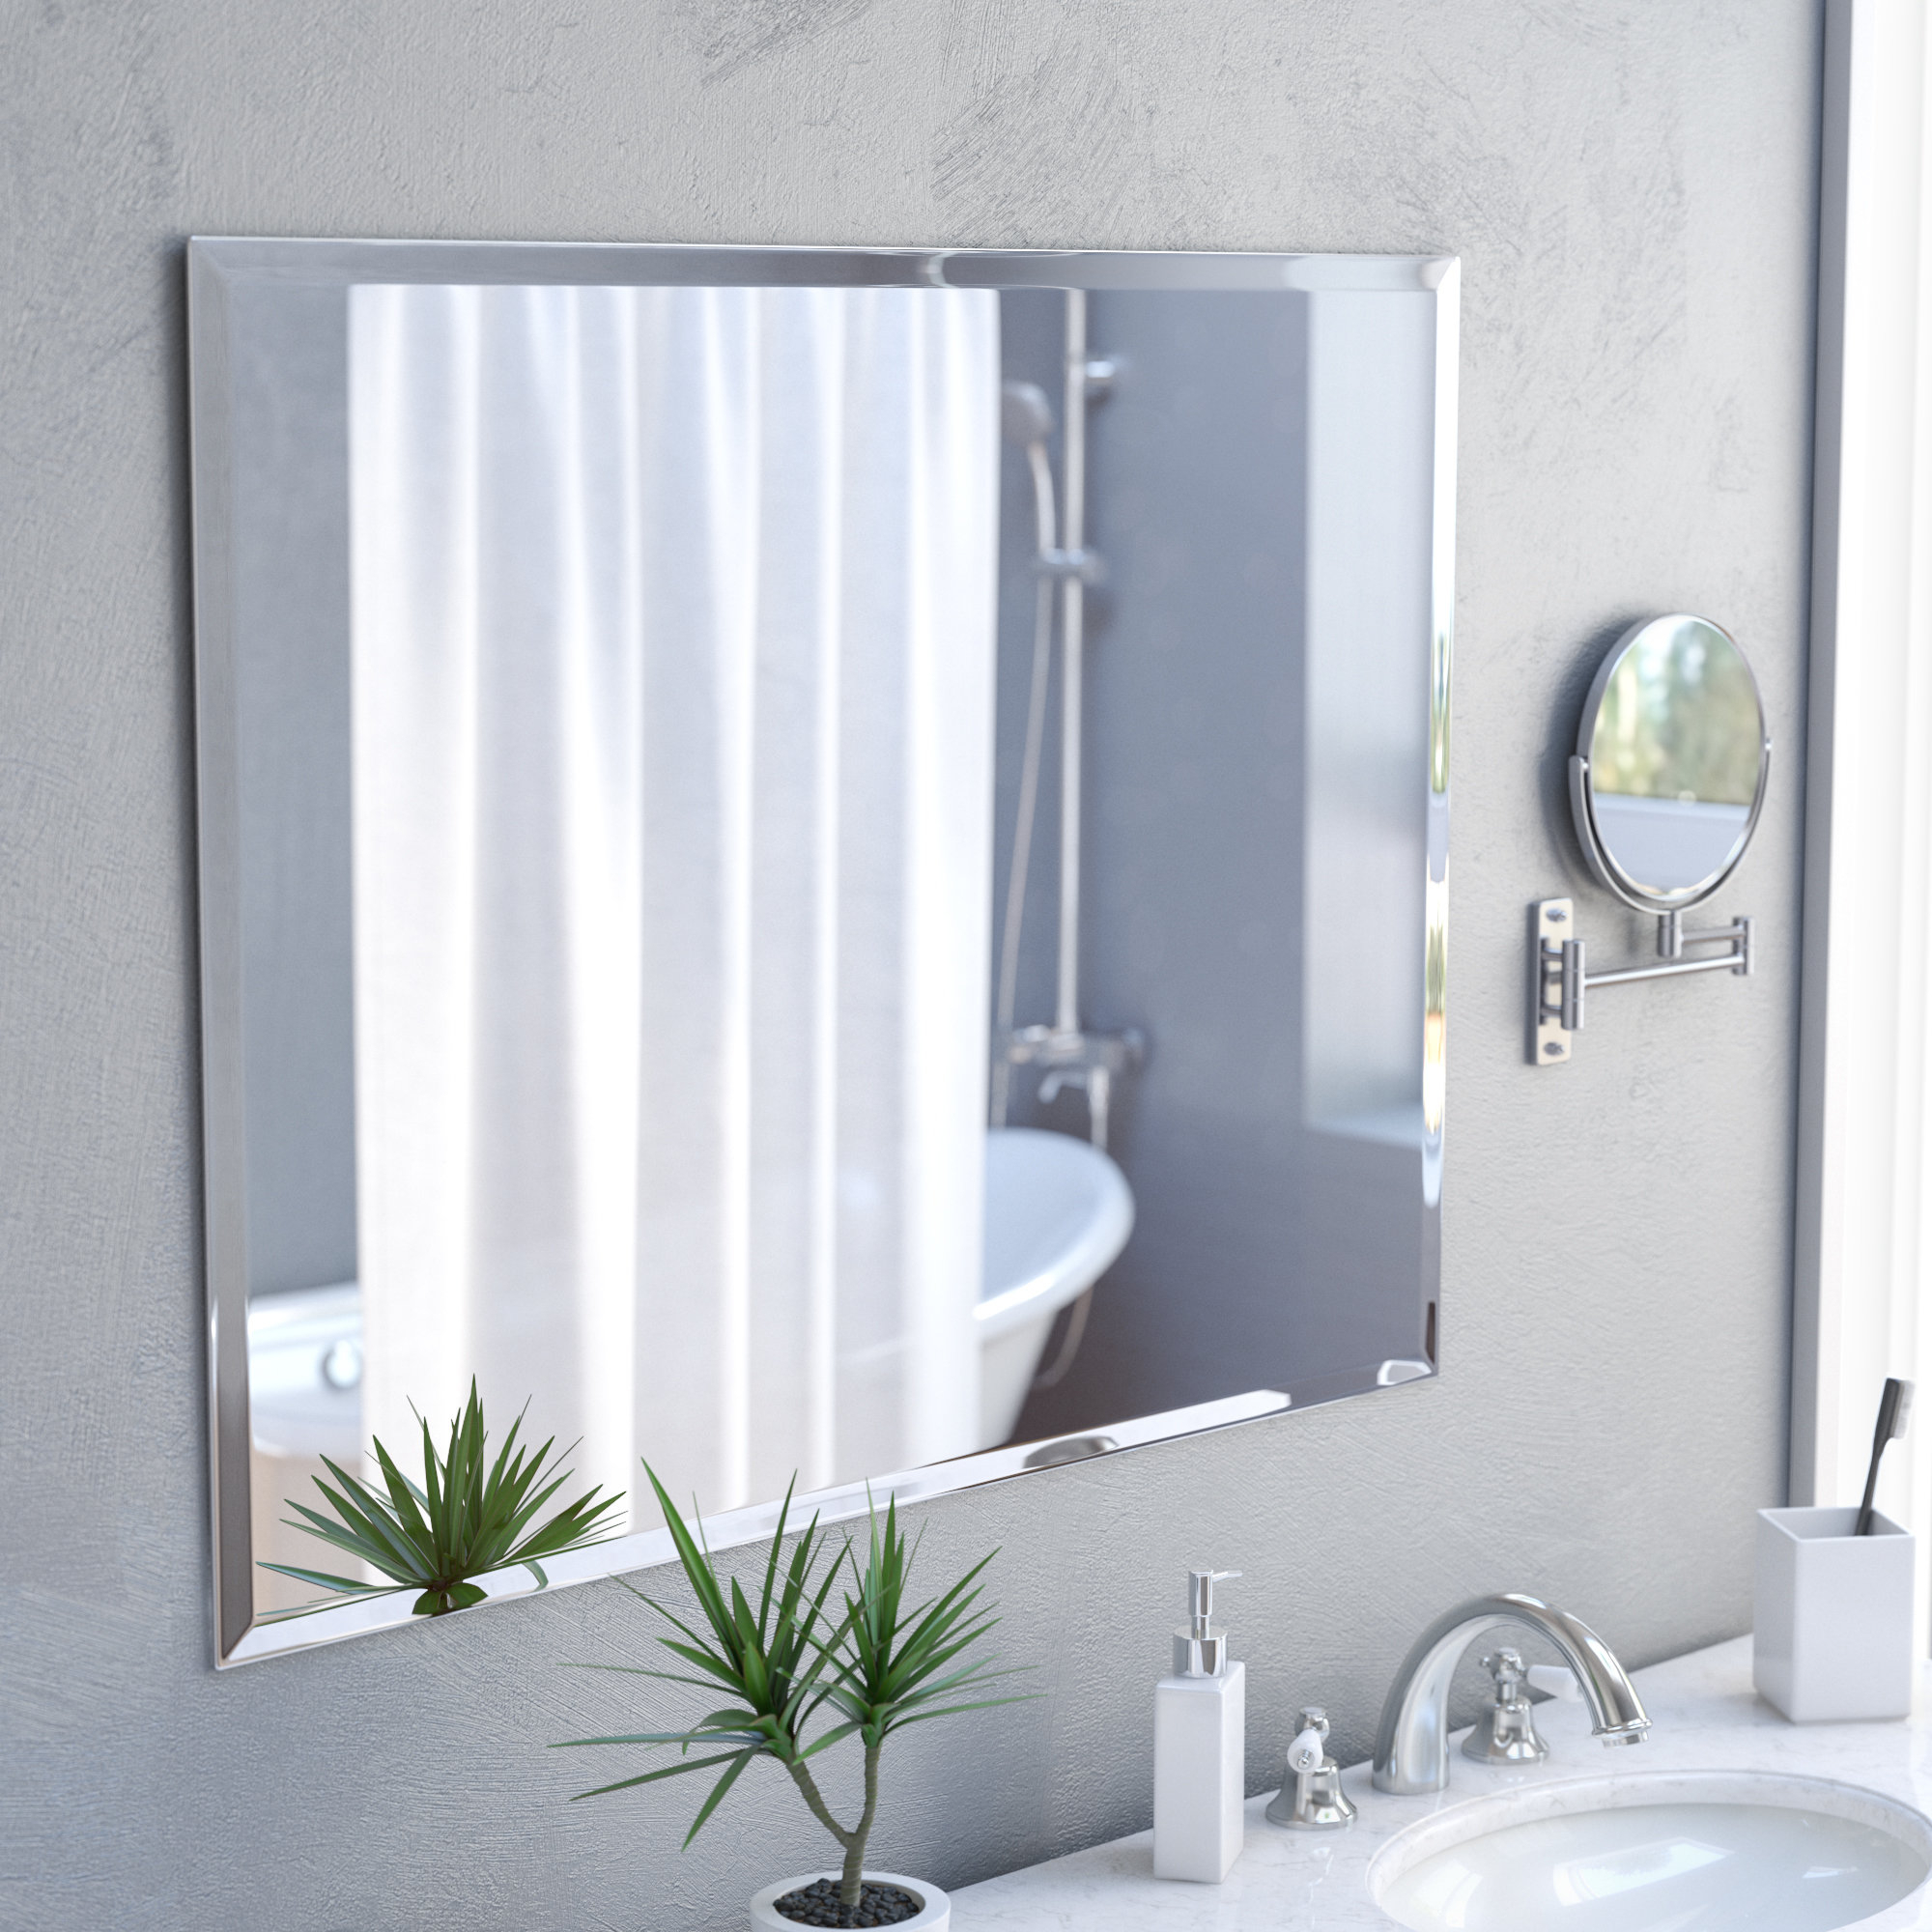 Beveled Bathroom Mirror – 10.fcpgo.streuobsttraum (Image 4 of 20)